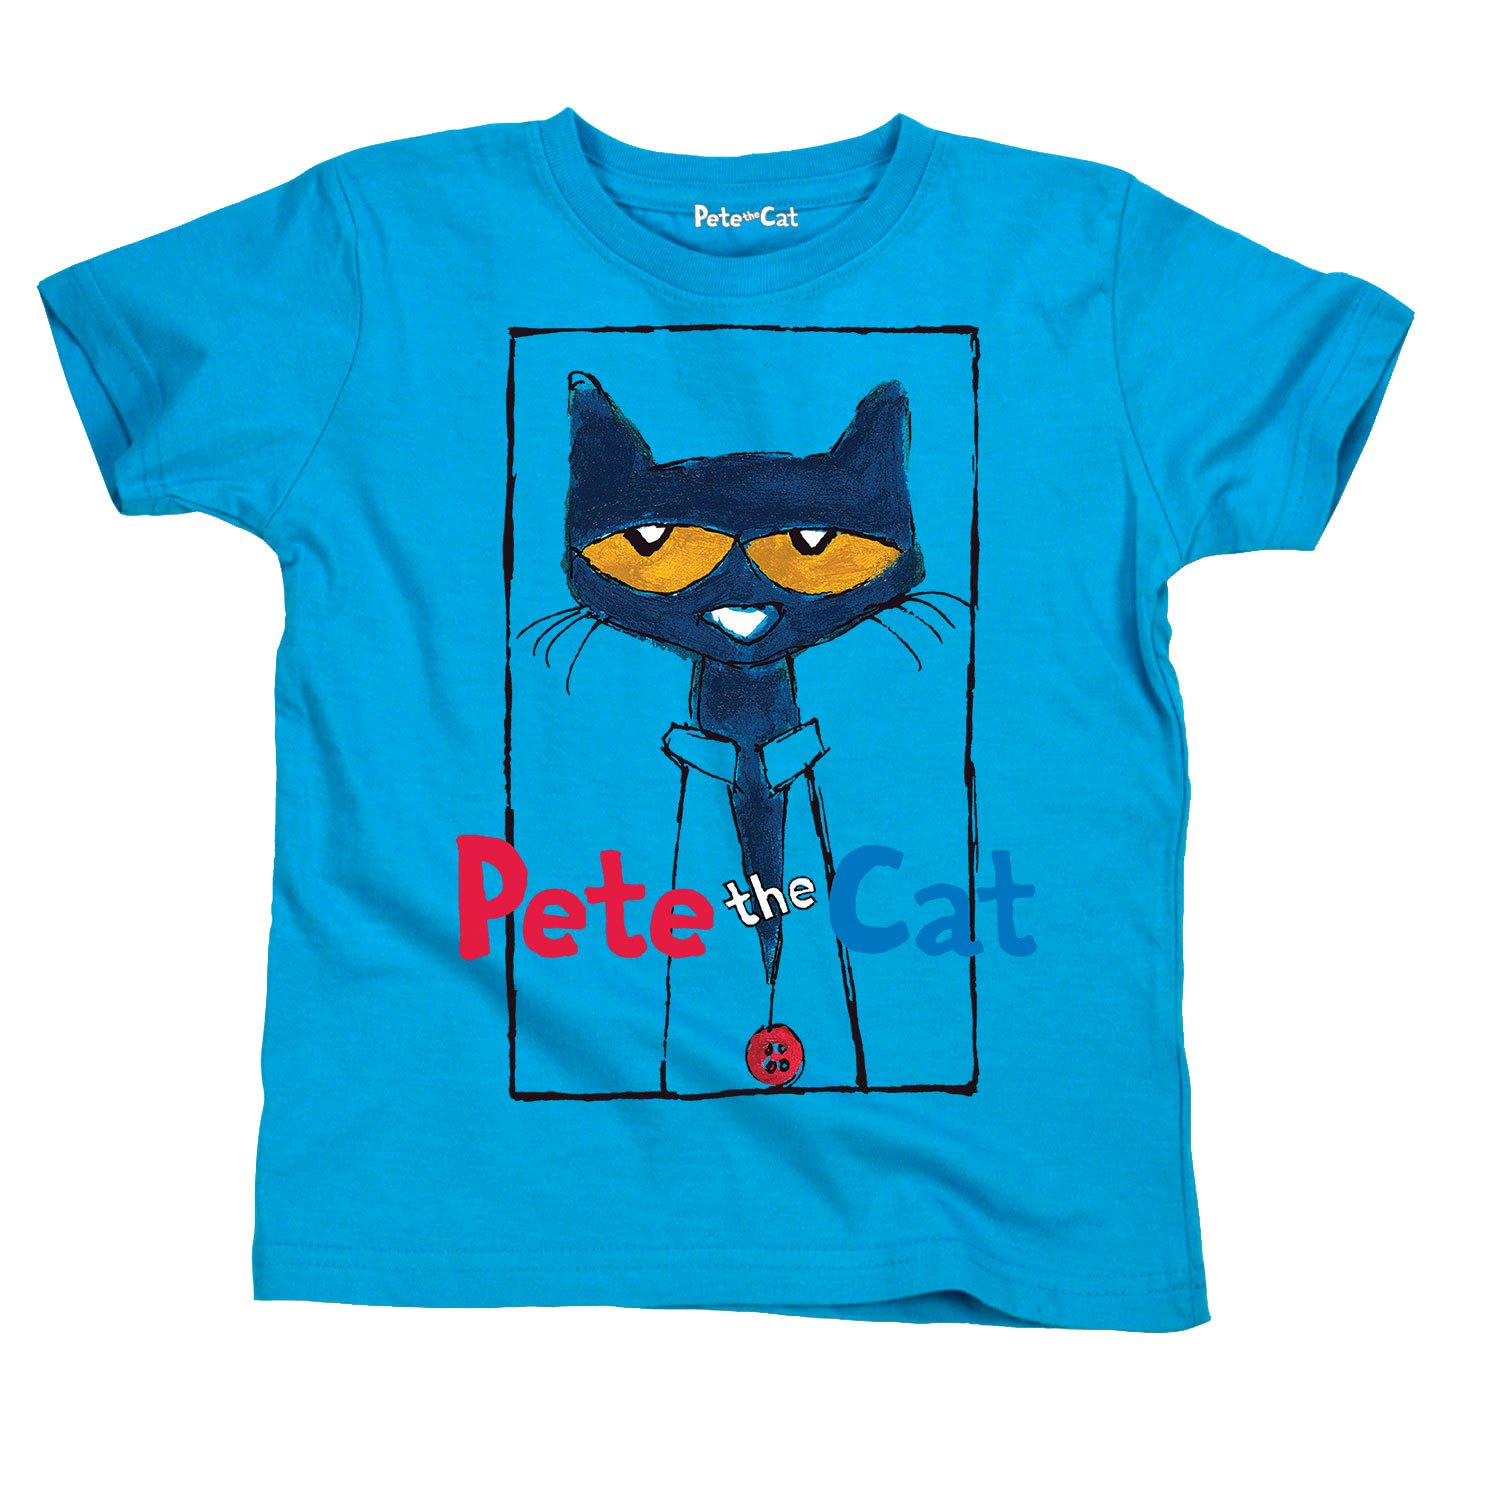 d9e84b09 Pete the Cat Officially Licensed Book Character Picture Frame Kids Youth T- Shirt Apparel